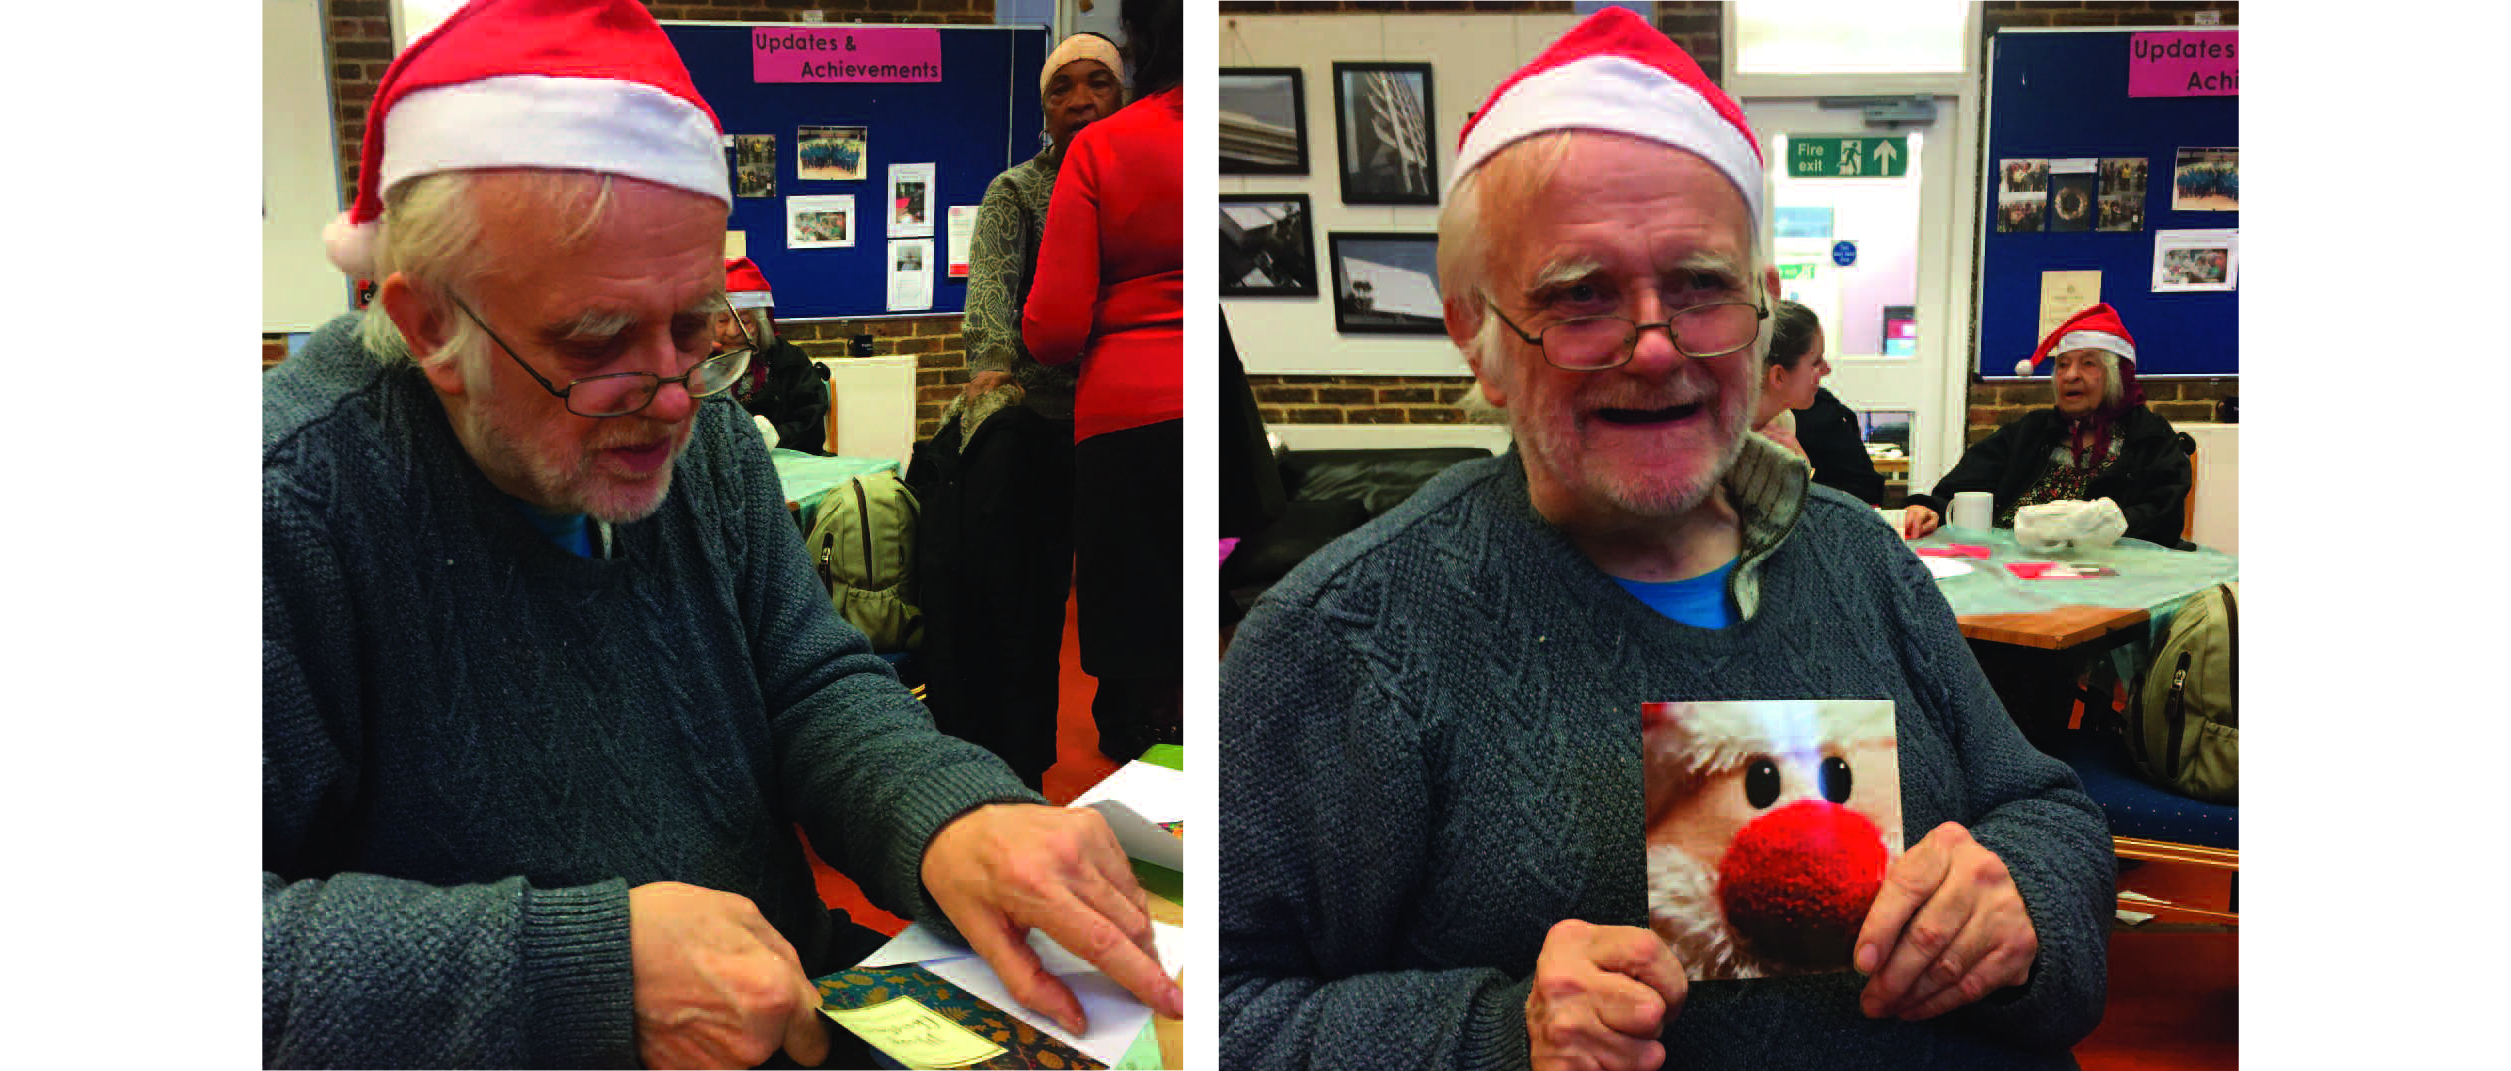 Above: One of the Age UK Drover club was especially delighted to be involved with the GCA's Festive Friday Christmas card event.